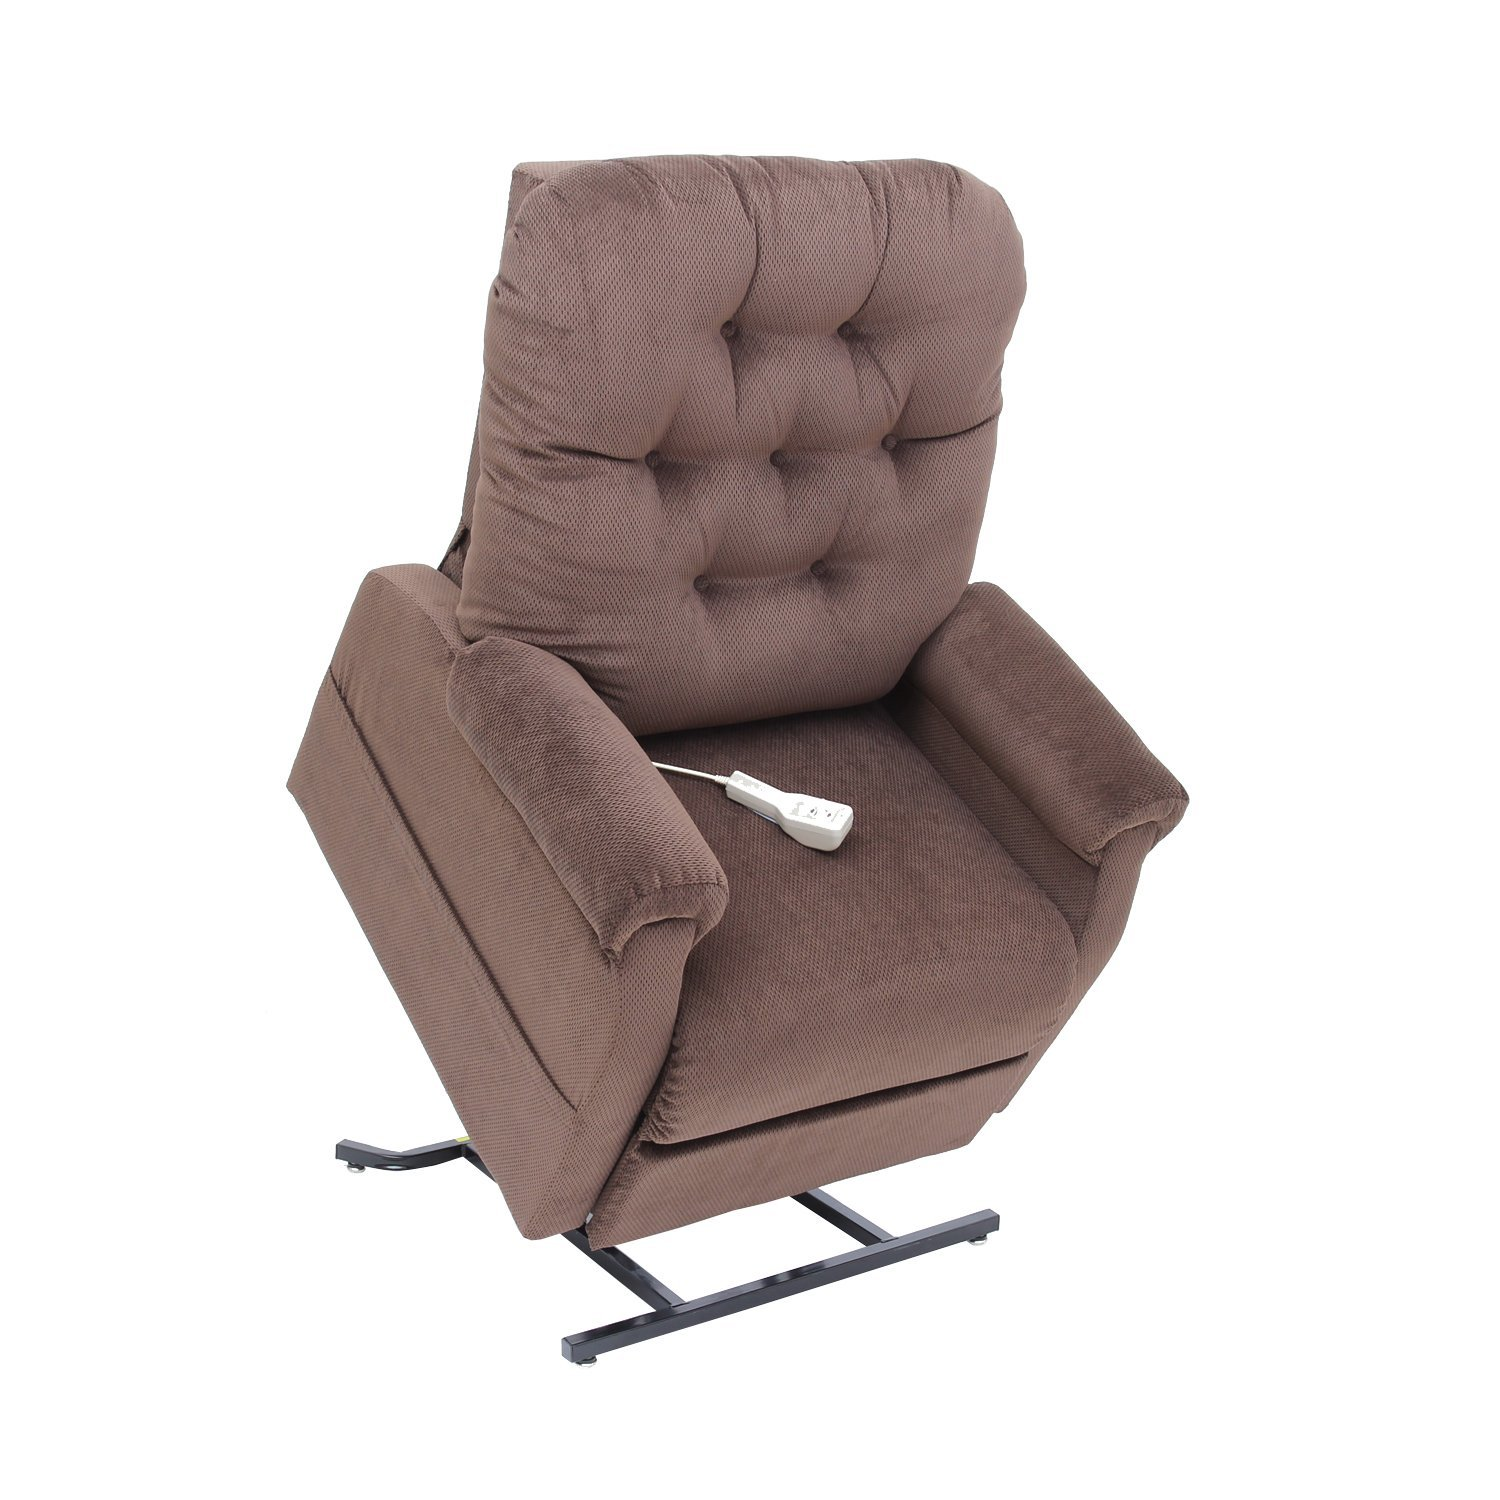 Walgreens Lift Chair Rest Old Tired Joints In A Reclining Chair Best Recliners